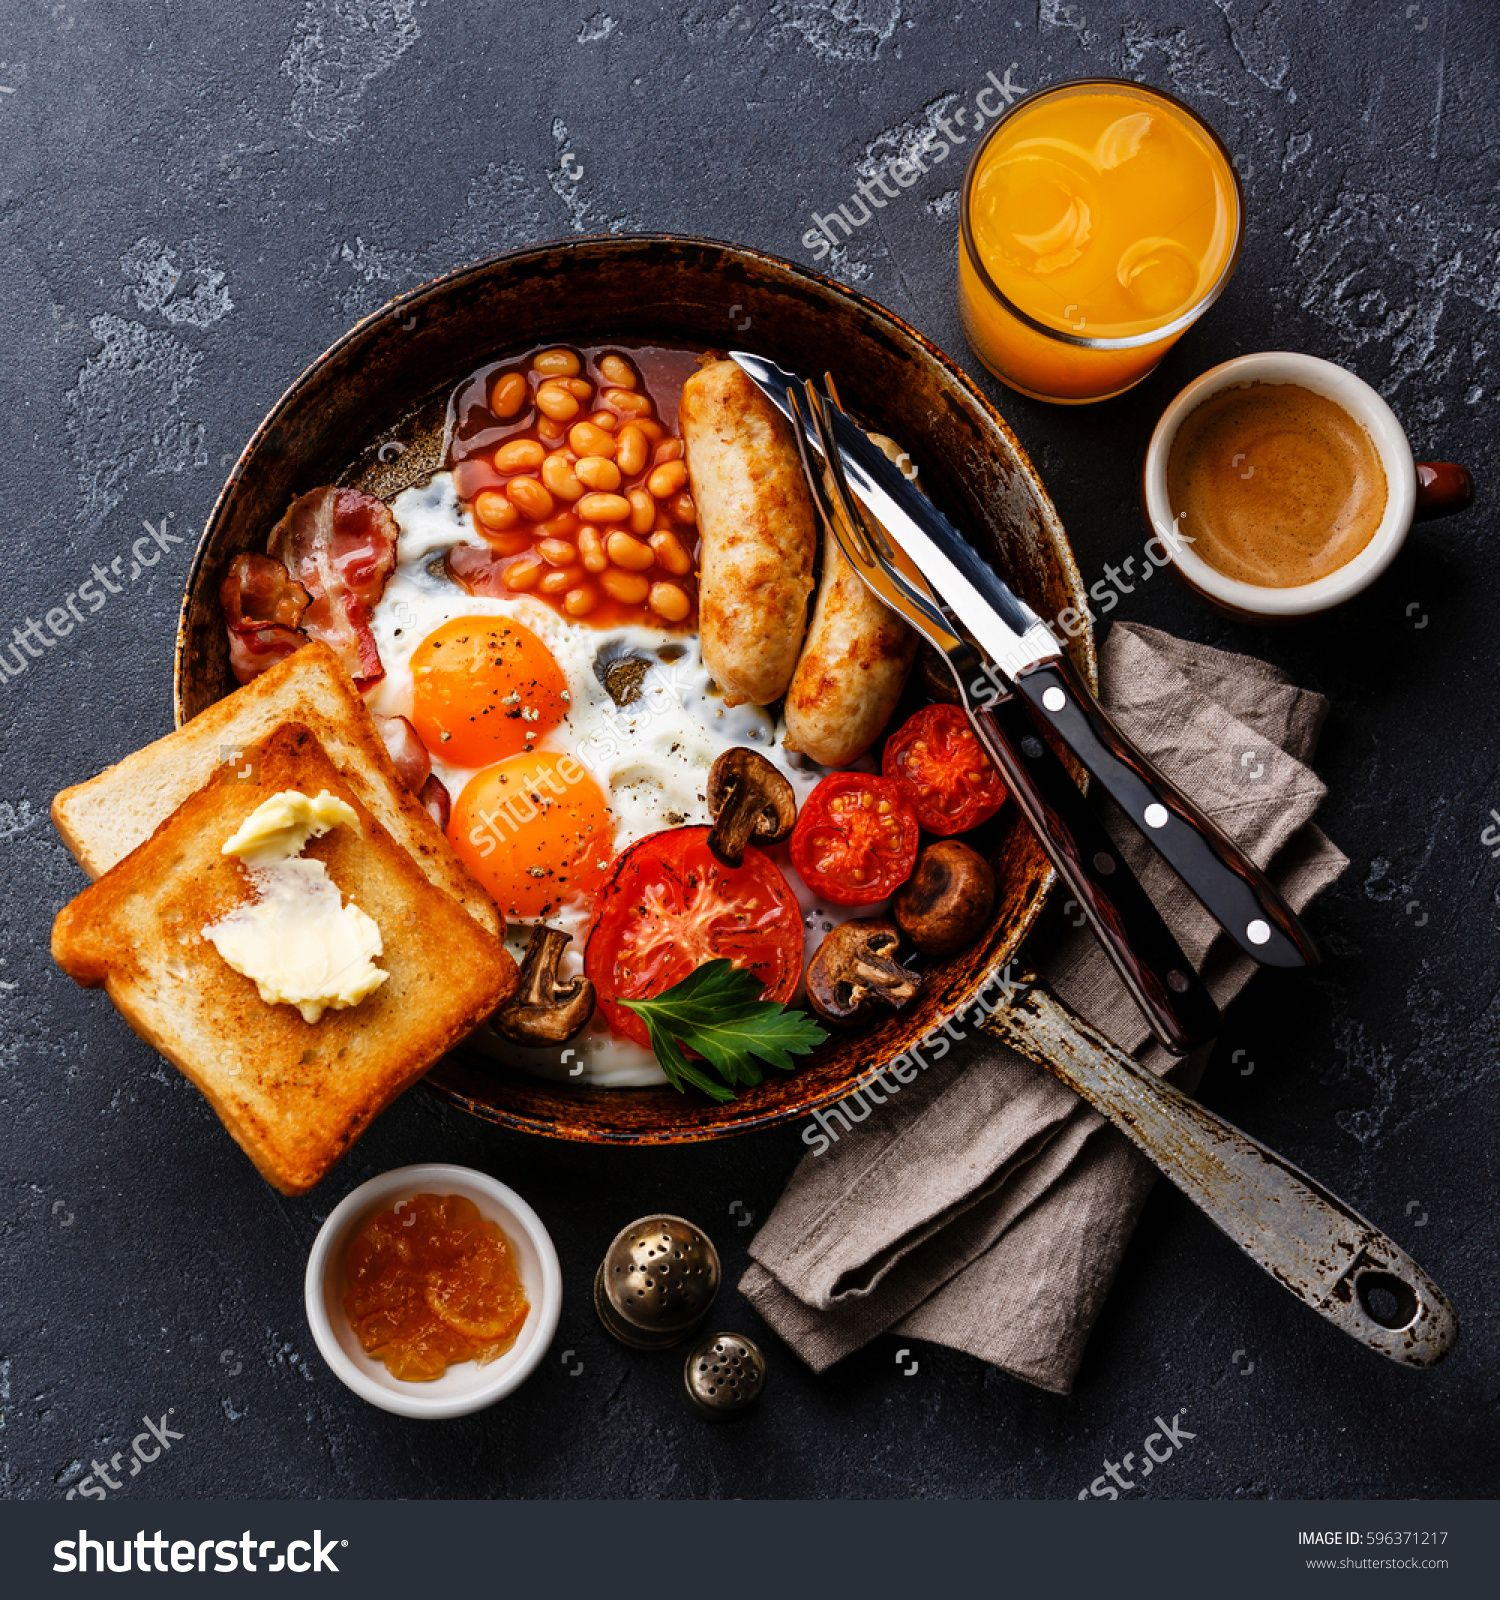 English Breakfast in cooking pan with fried eggs, sausages